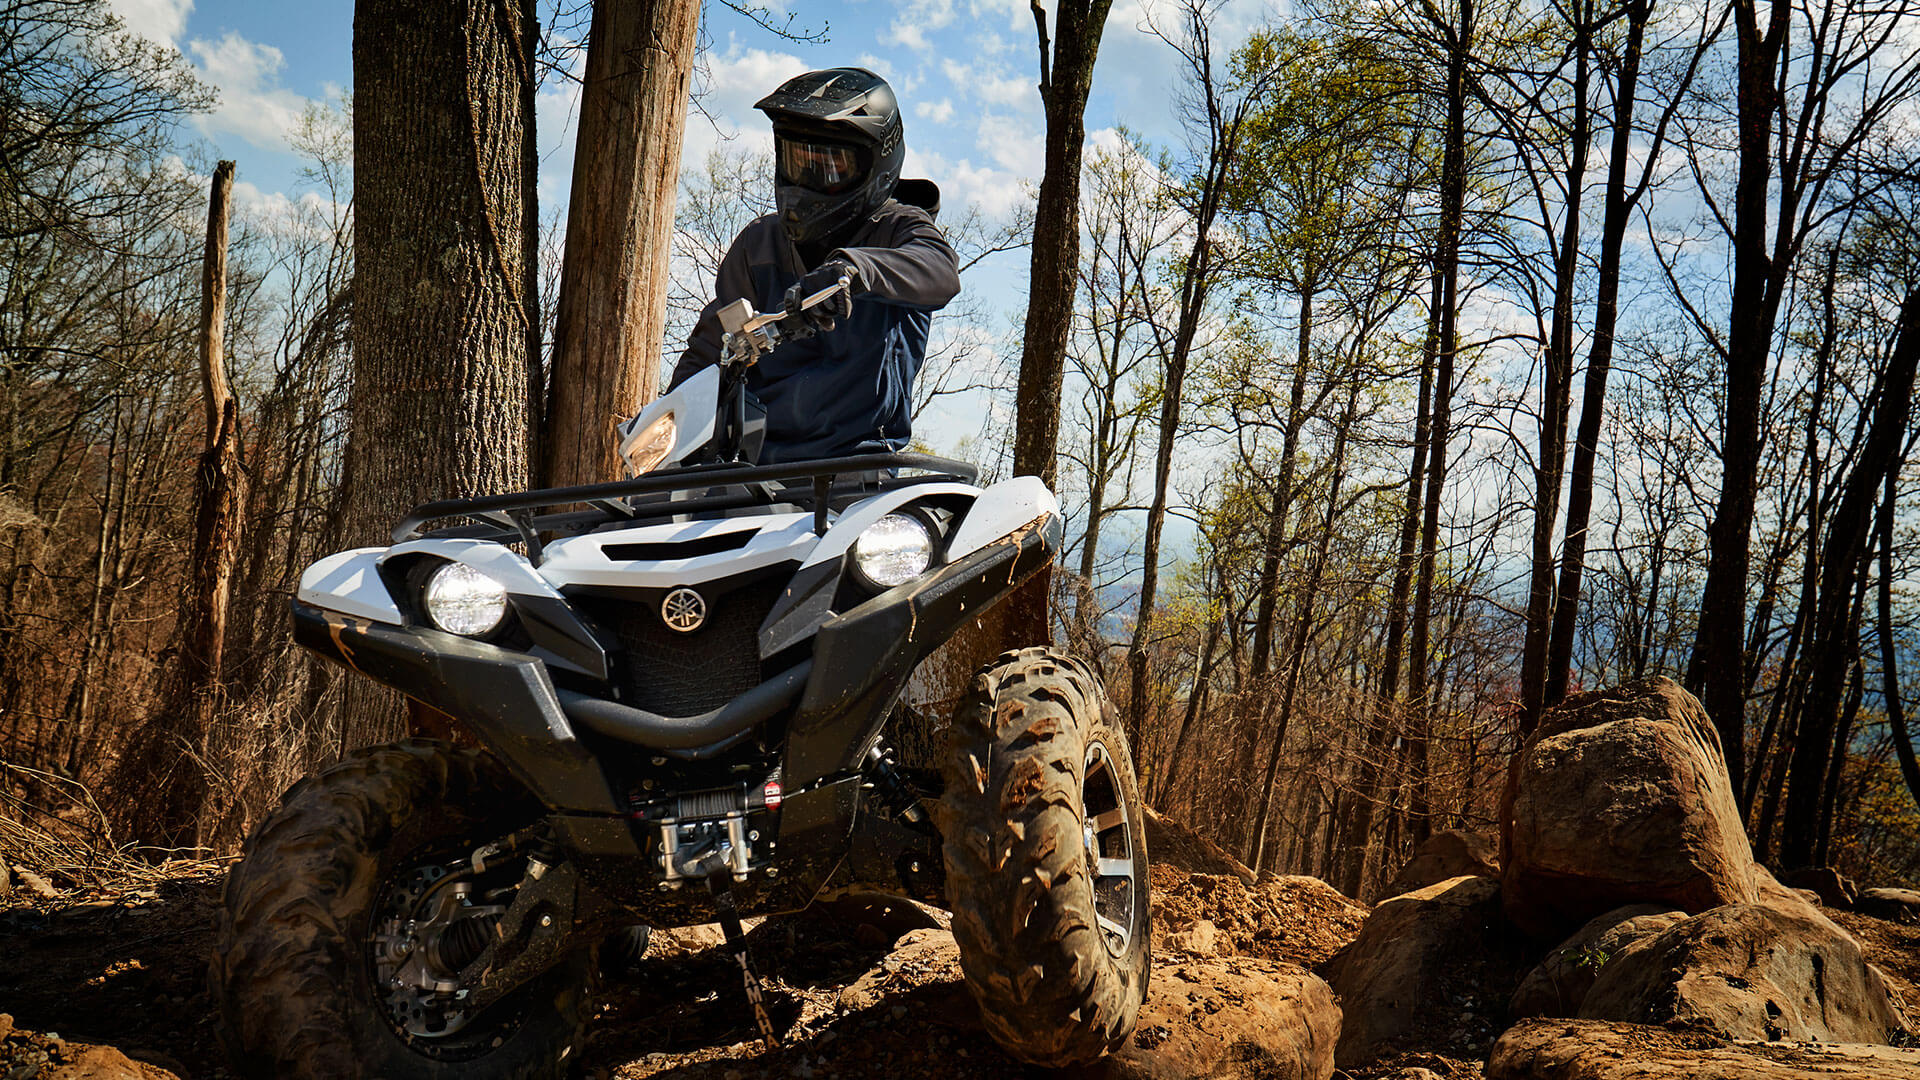 An ATV image, one of a series of rotating background images